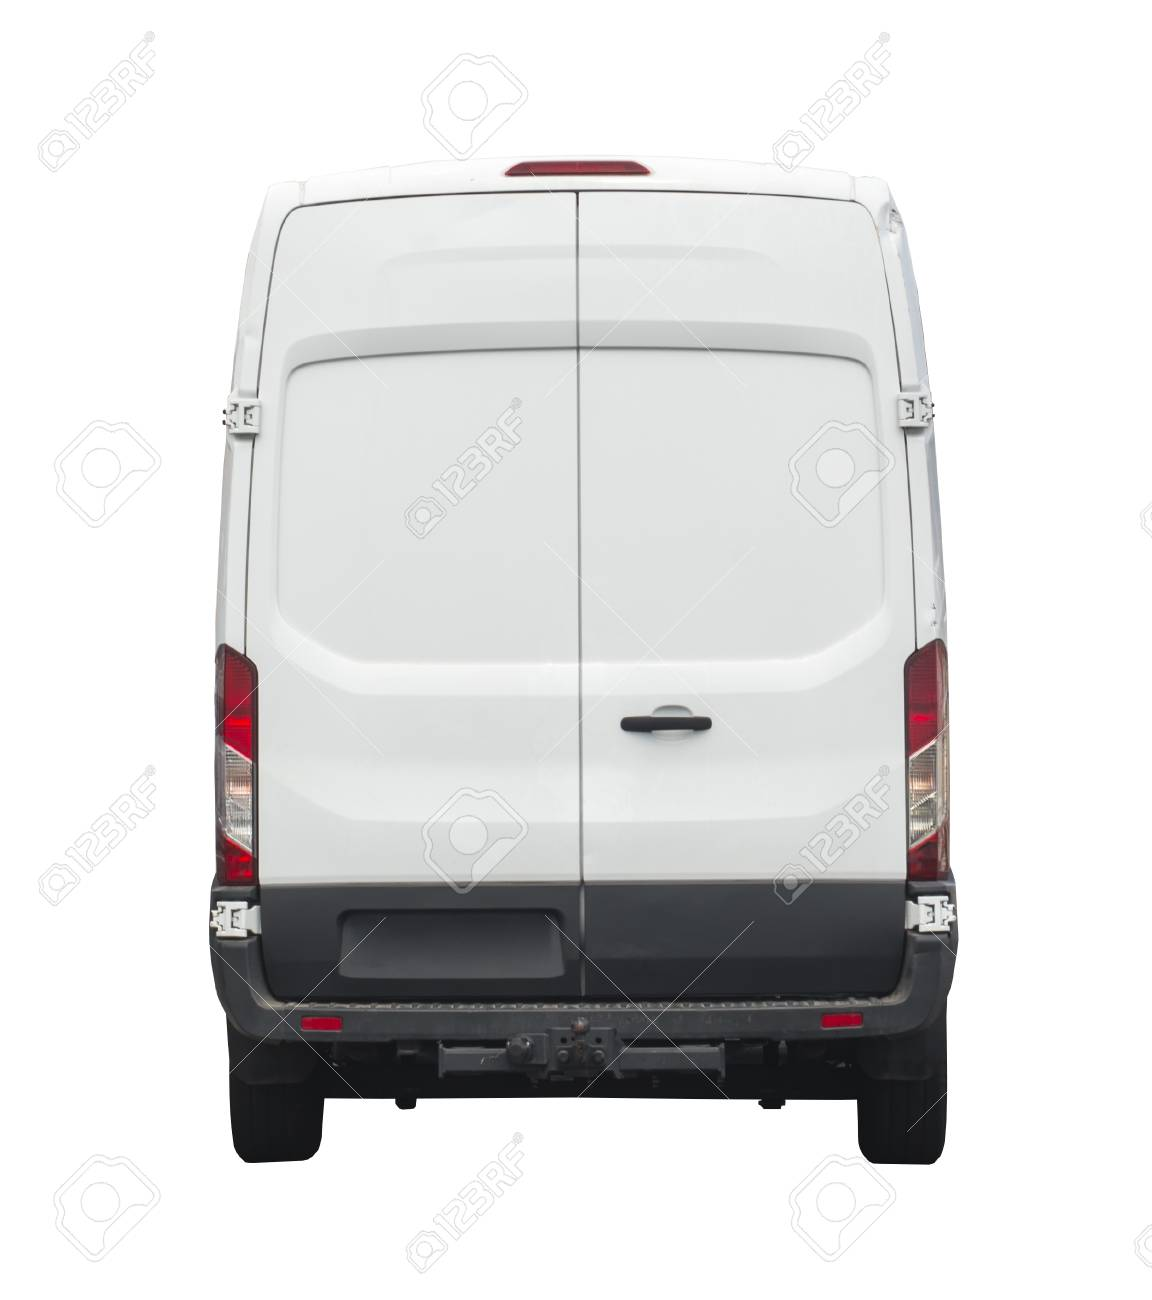 255fd351a5 Rear of white van for your branding Stock Photo - 90997936